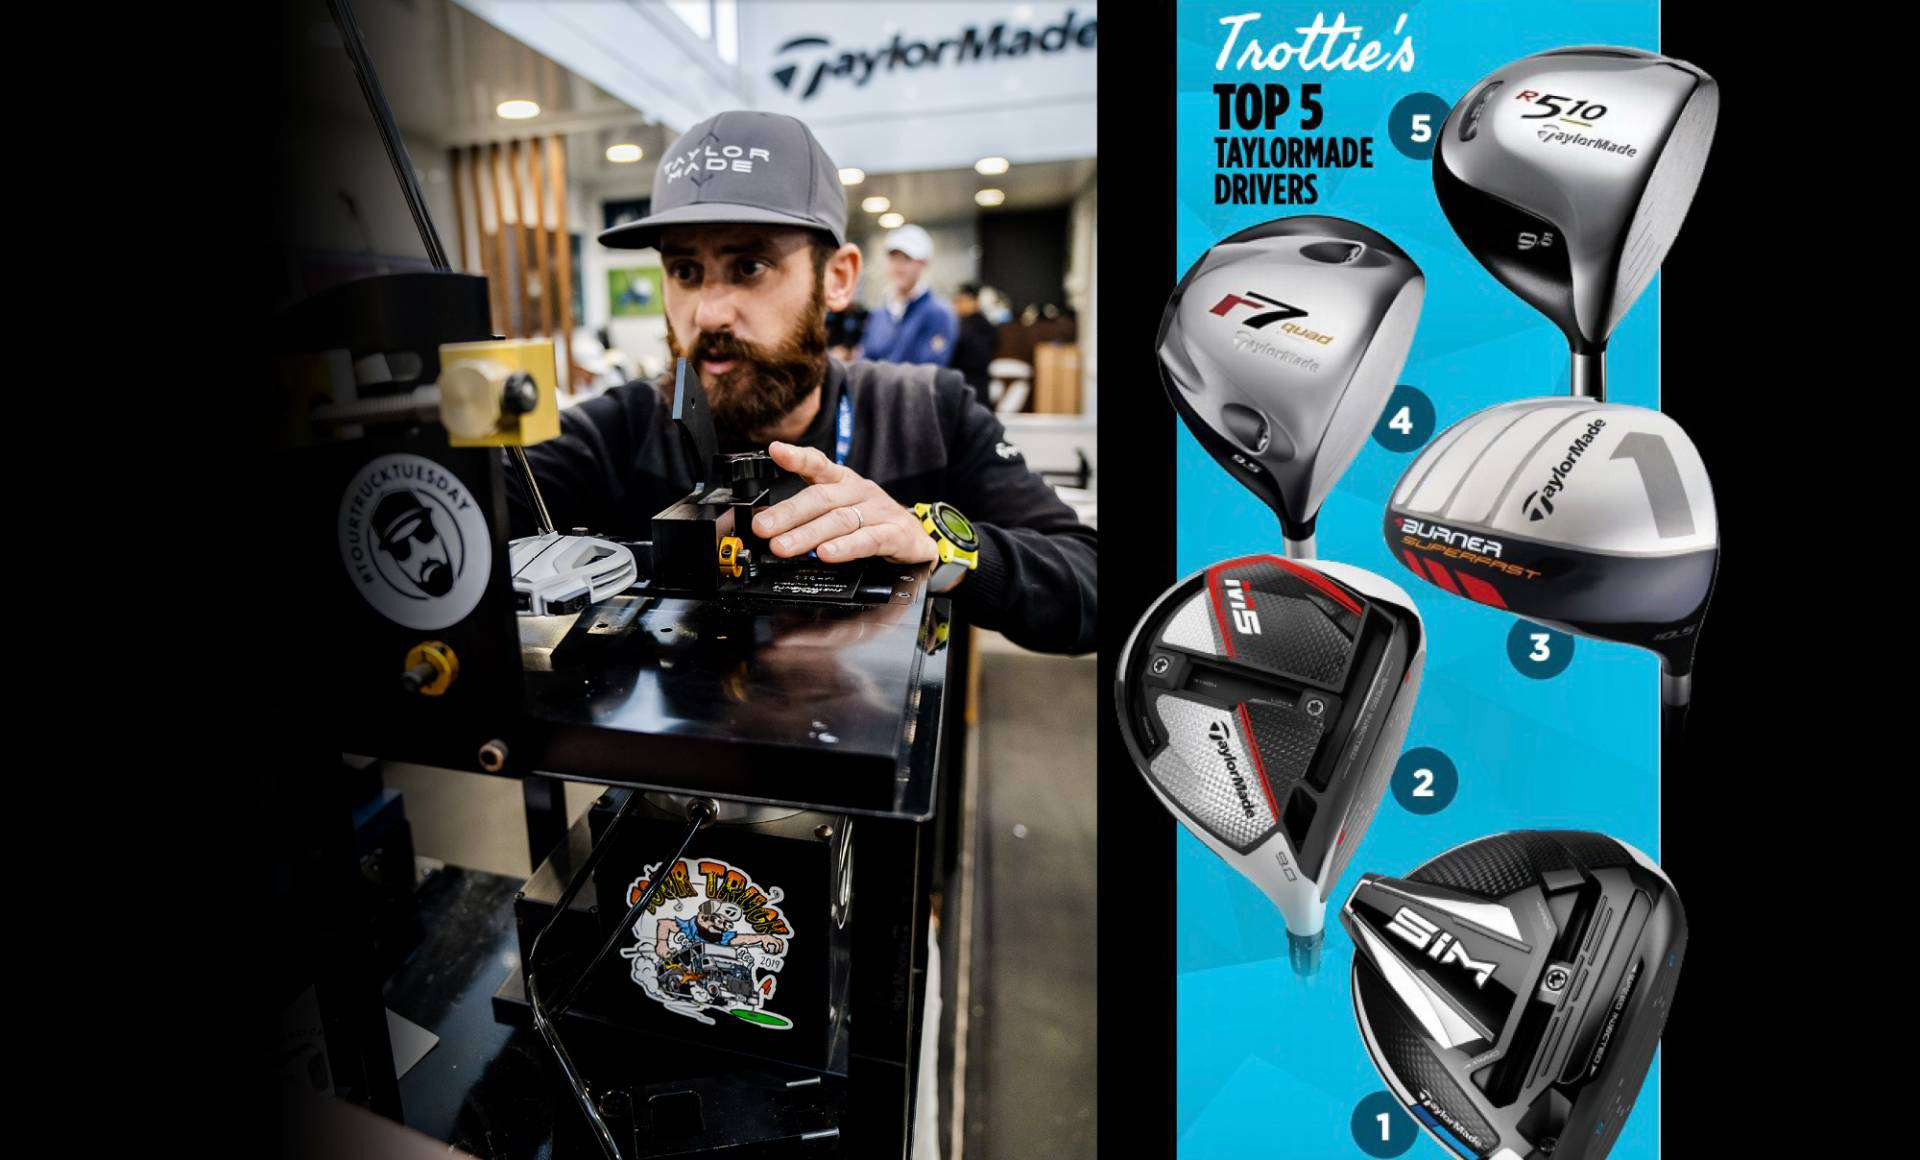 five taylormade drivers